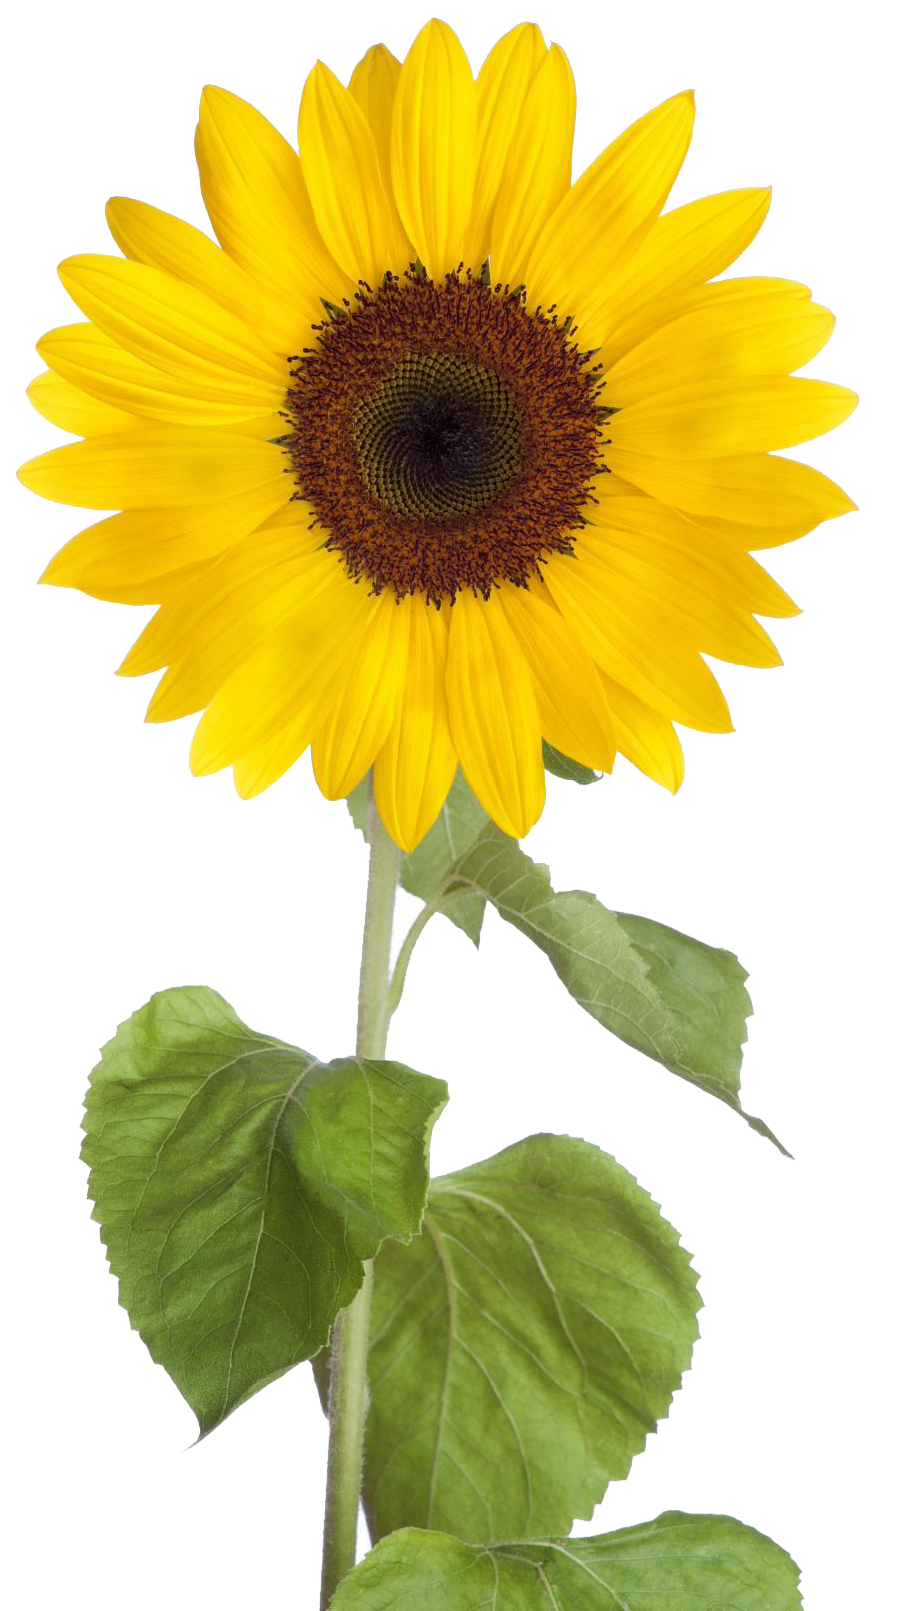 Sunflowers PNG - 6590